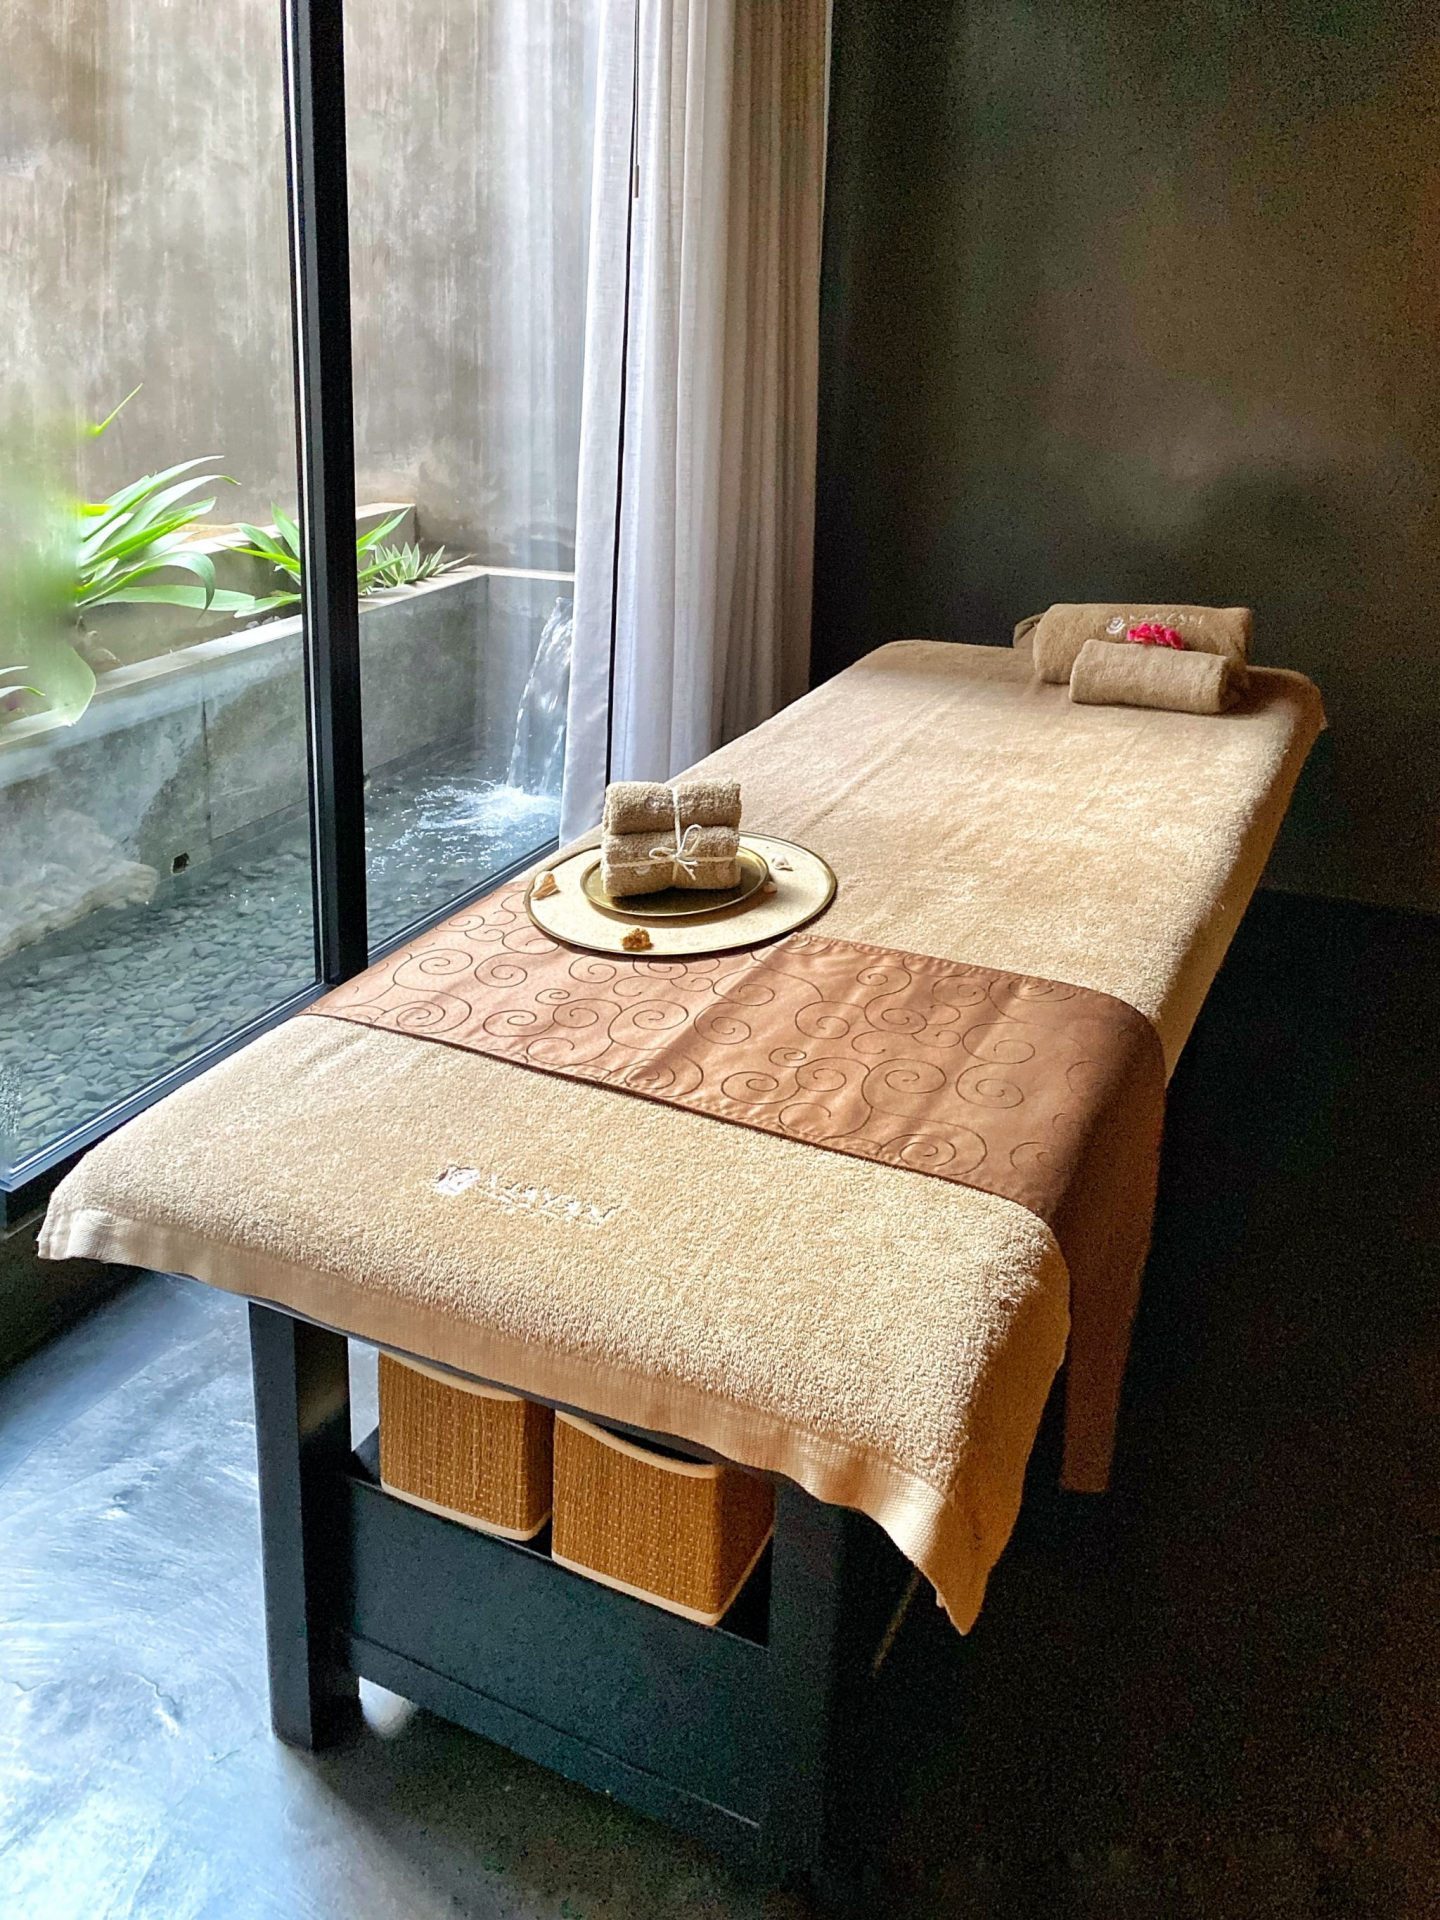 Therapy room - Mayan Secret Spa, Barcelona